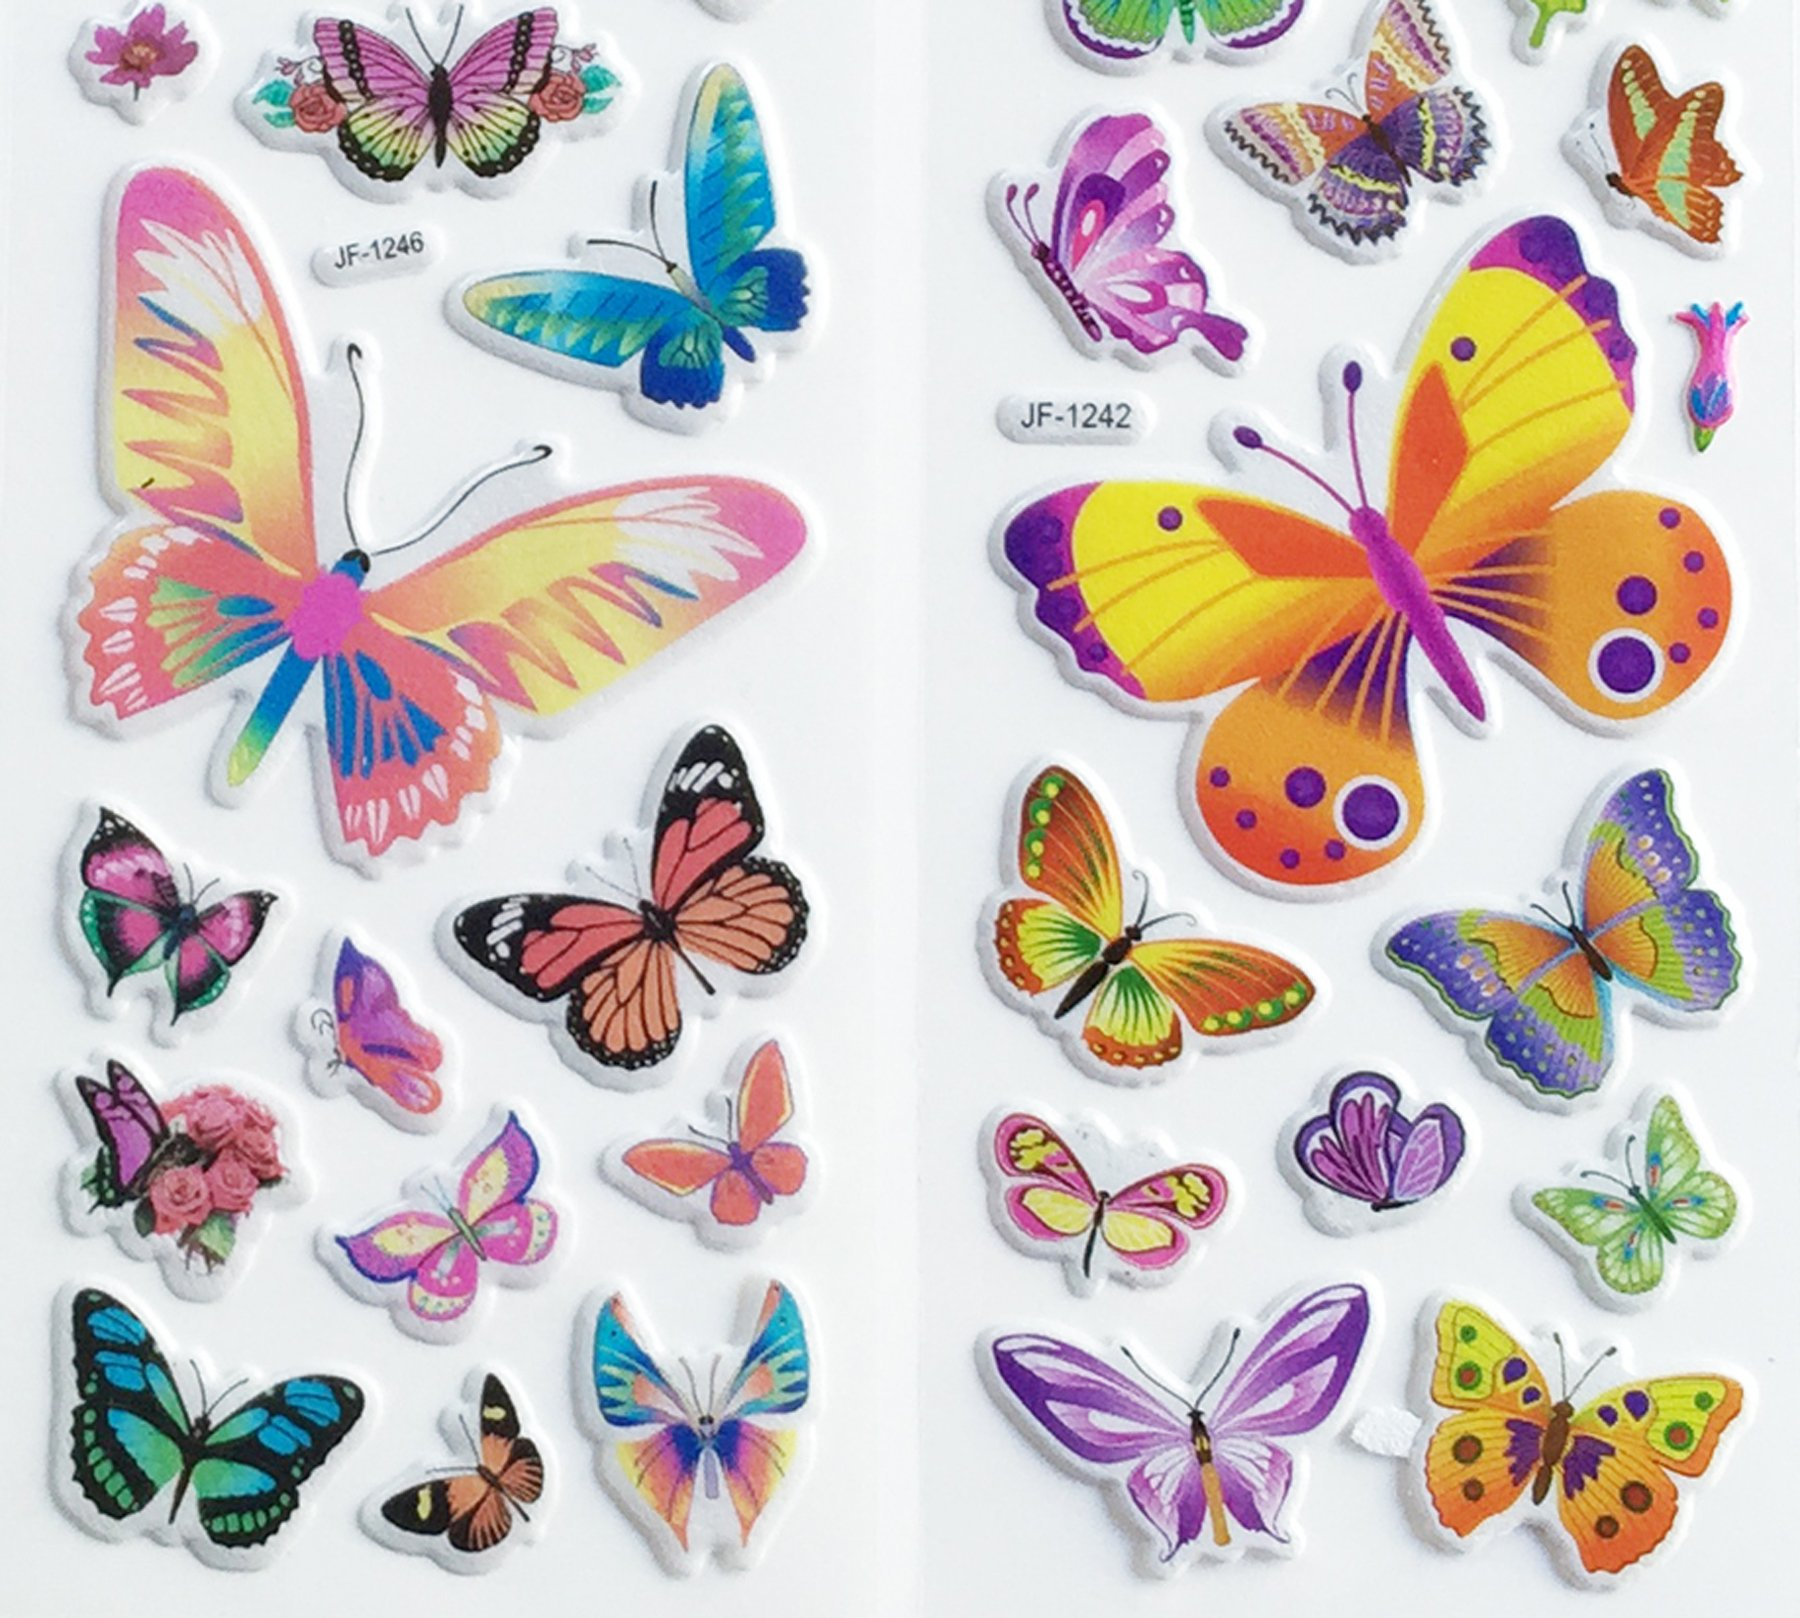 12 Sheets Butterfly Puffy Stickers by PIP